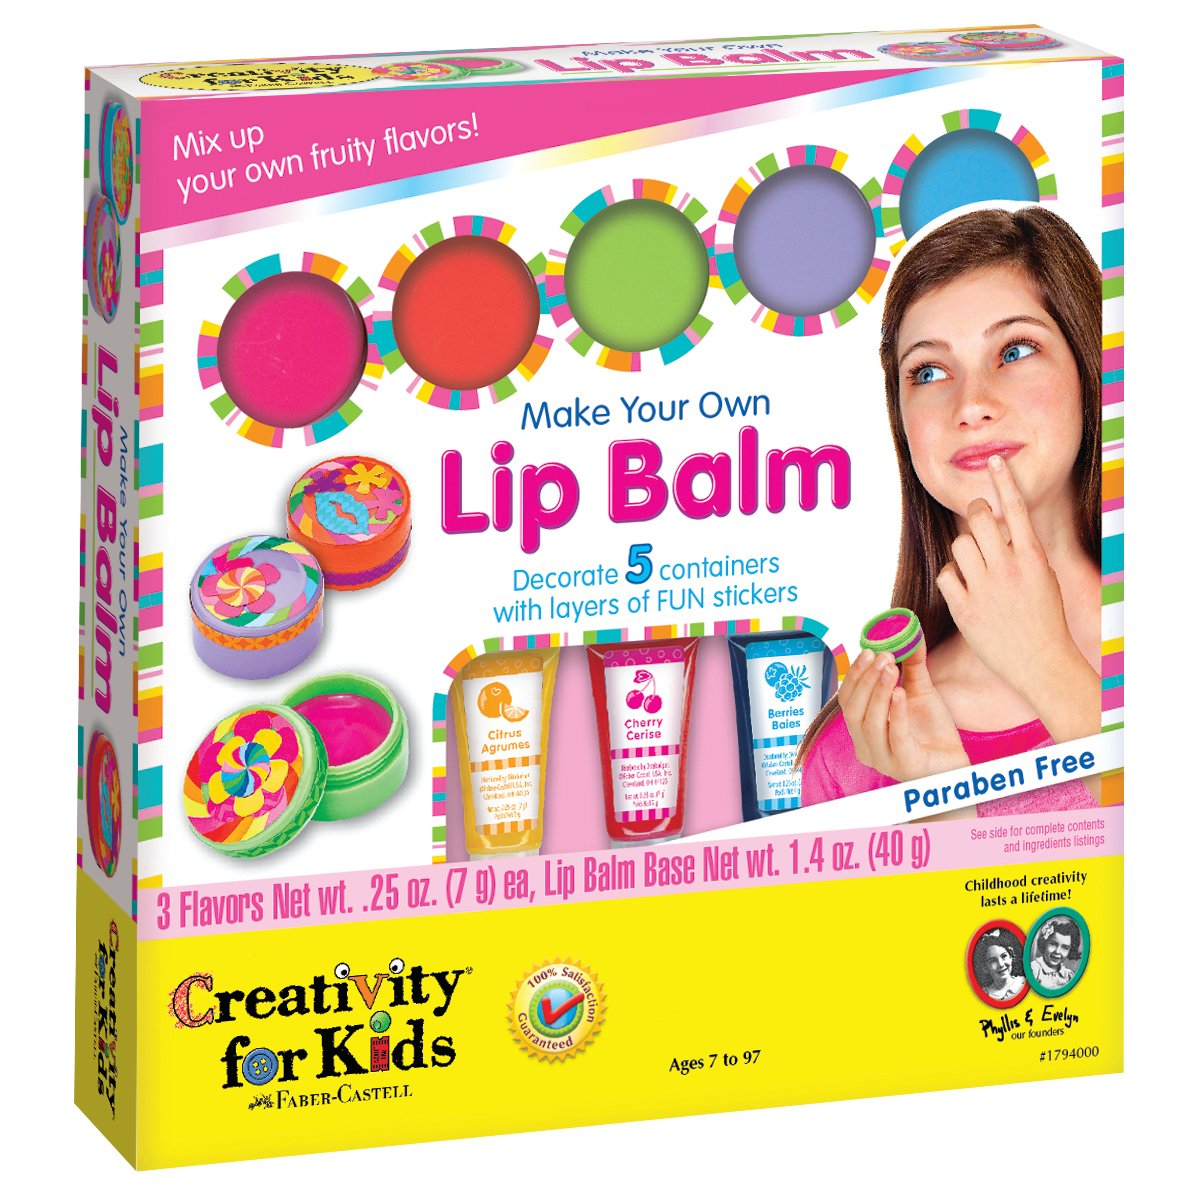 Creativity for Kids Make Your Own Lip Balm - Create 5 Fruity Lip Balms